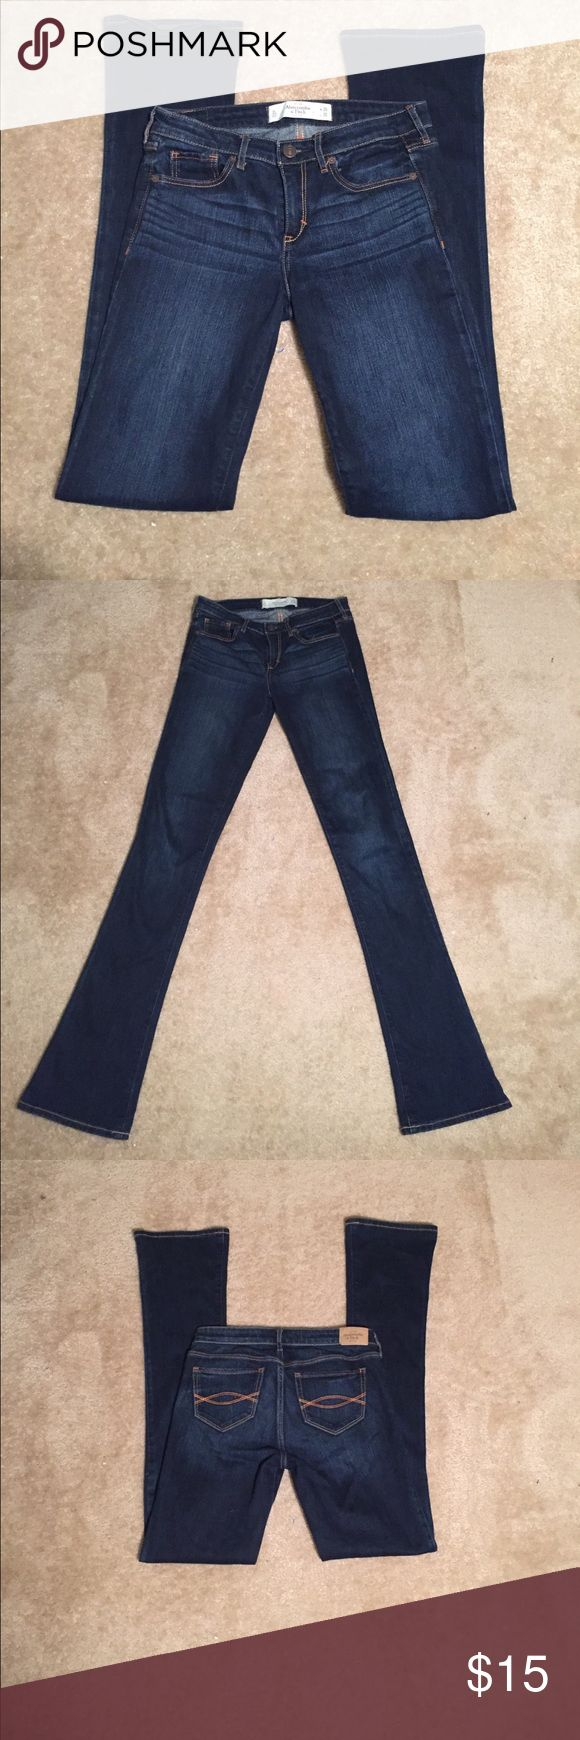 Abercrombie and Fitch denim jeans size 26W/35L Dark wash Abercrombie and Fitch skinny boot dark blue jean. Abercrombie & Fitch Jeans Skinny